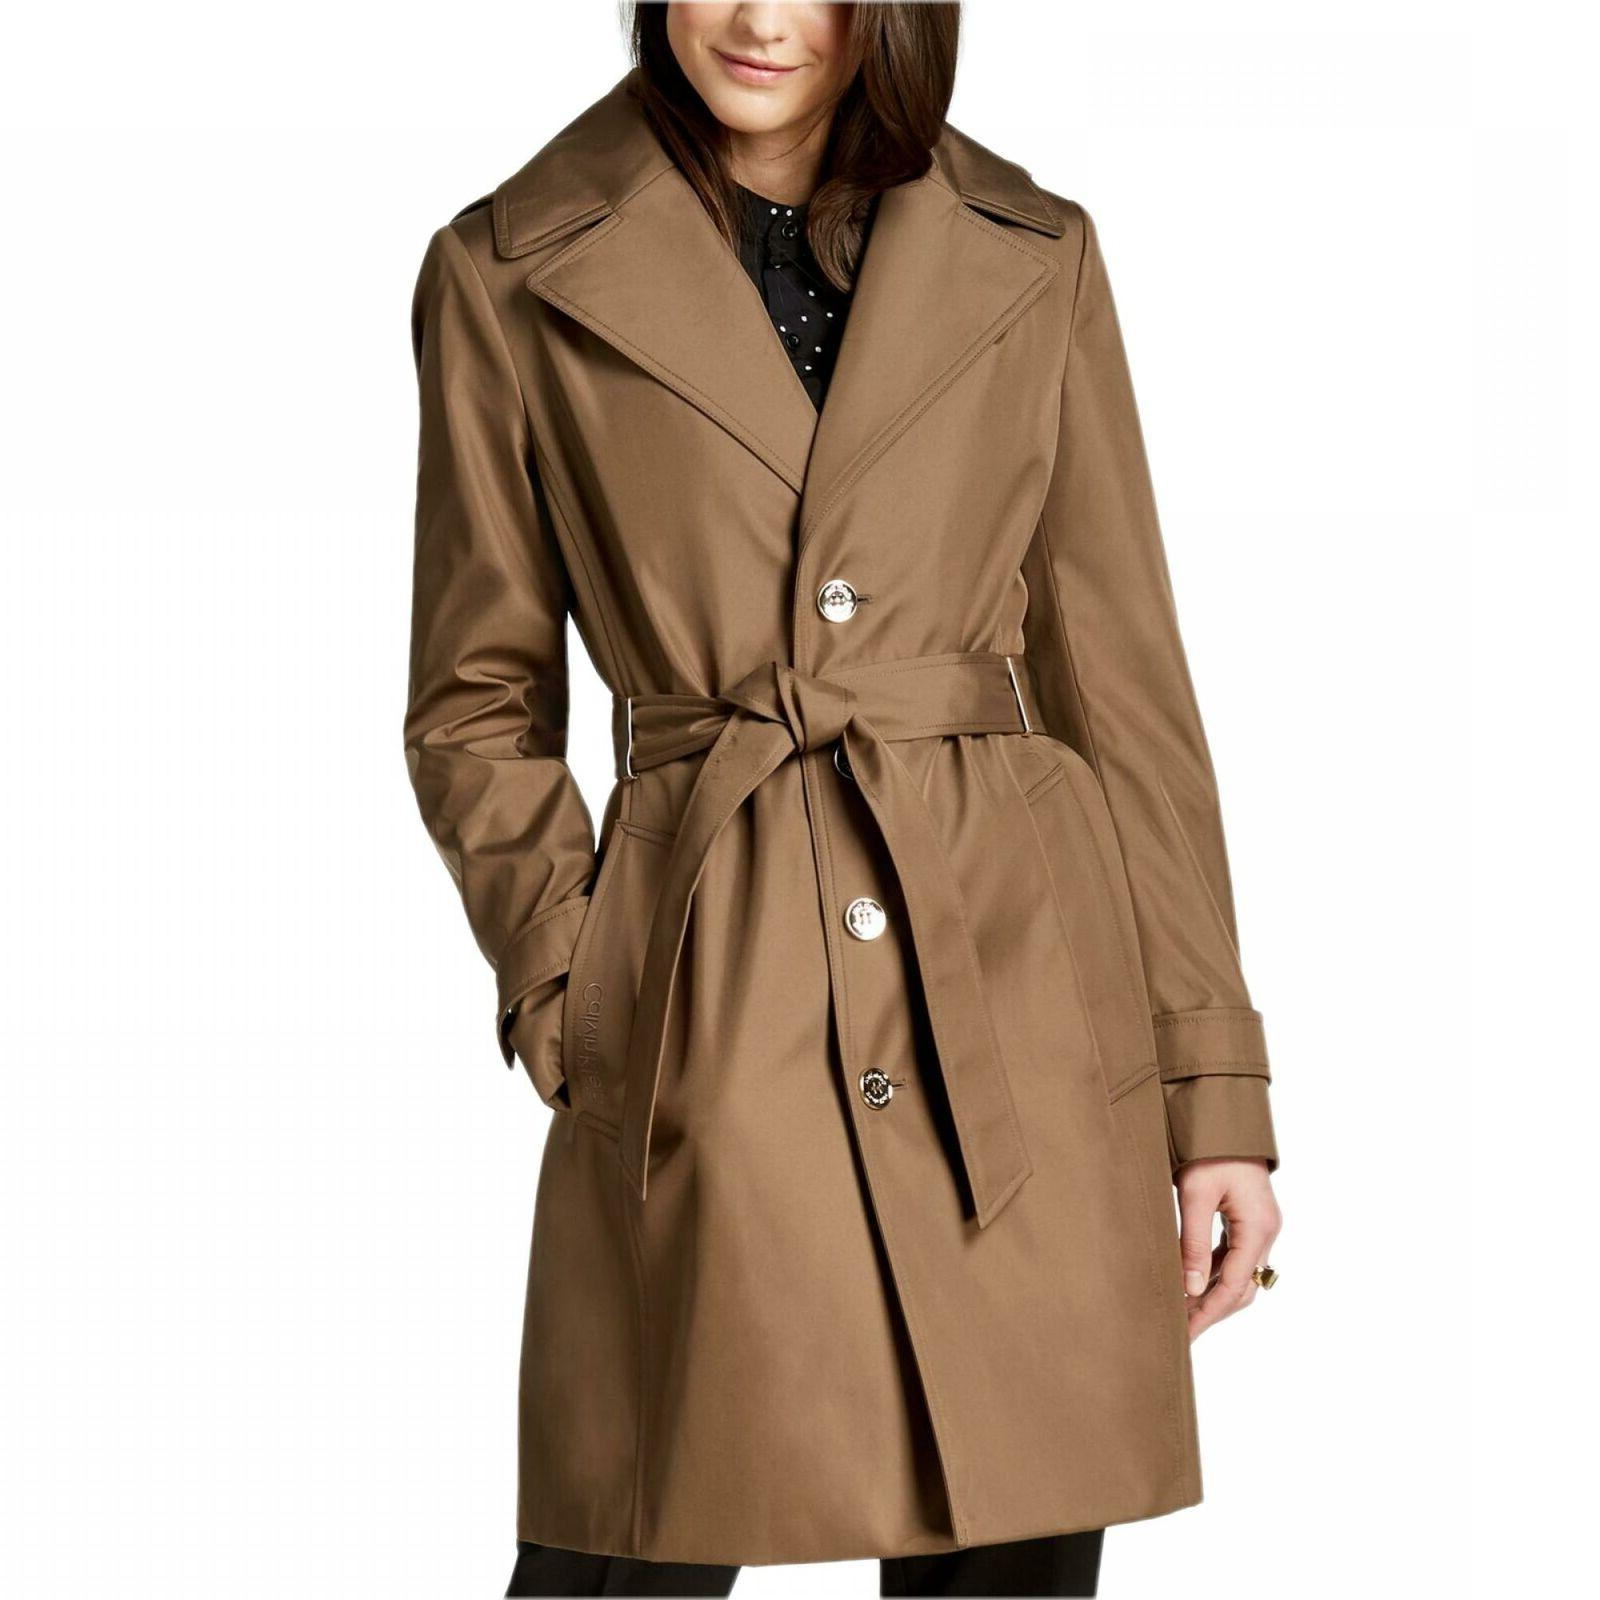 nwt womens hooded belted water resistant trench